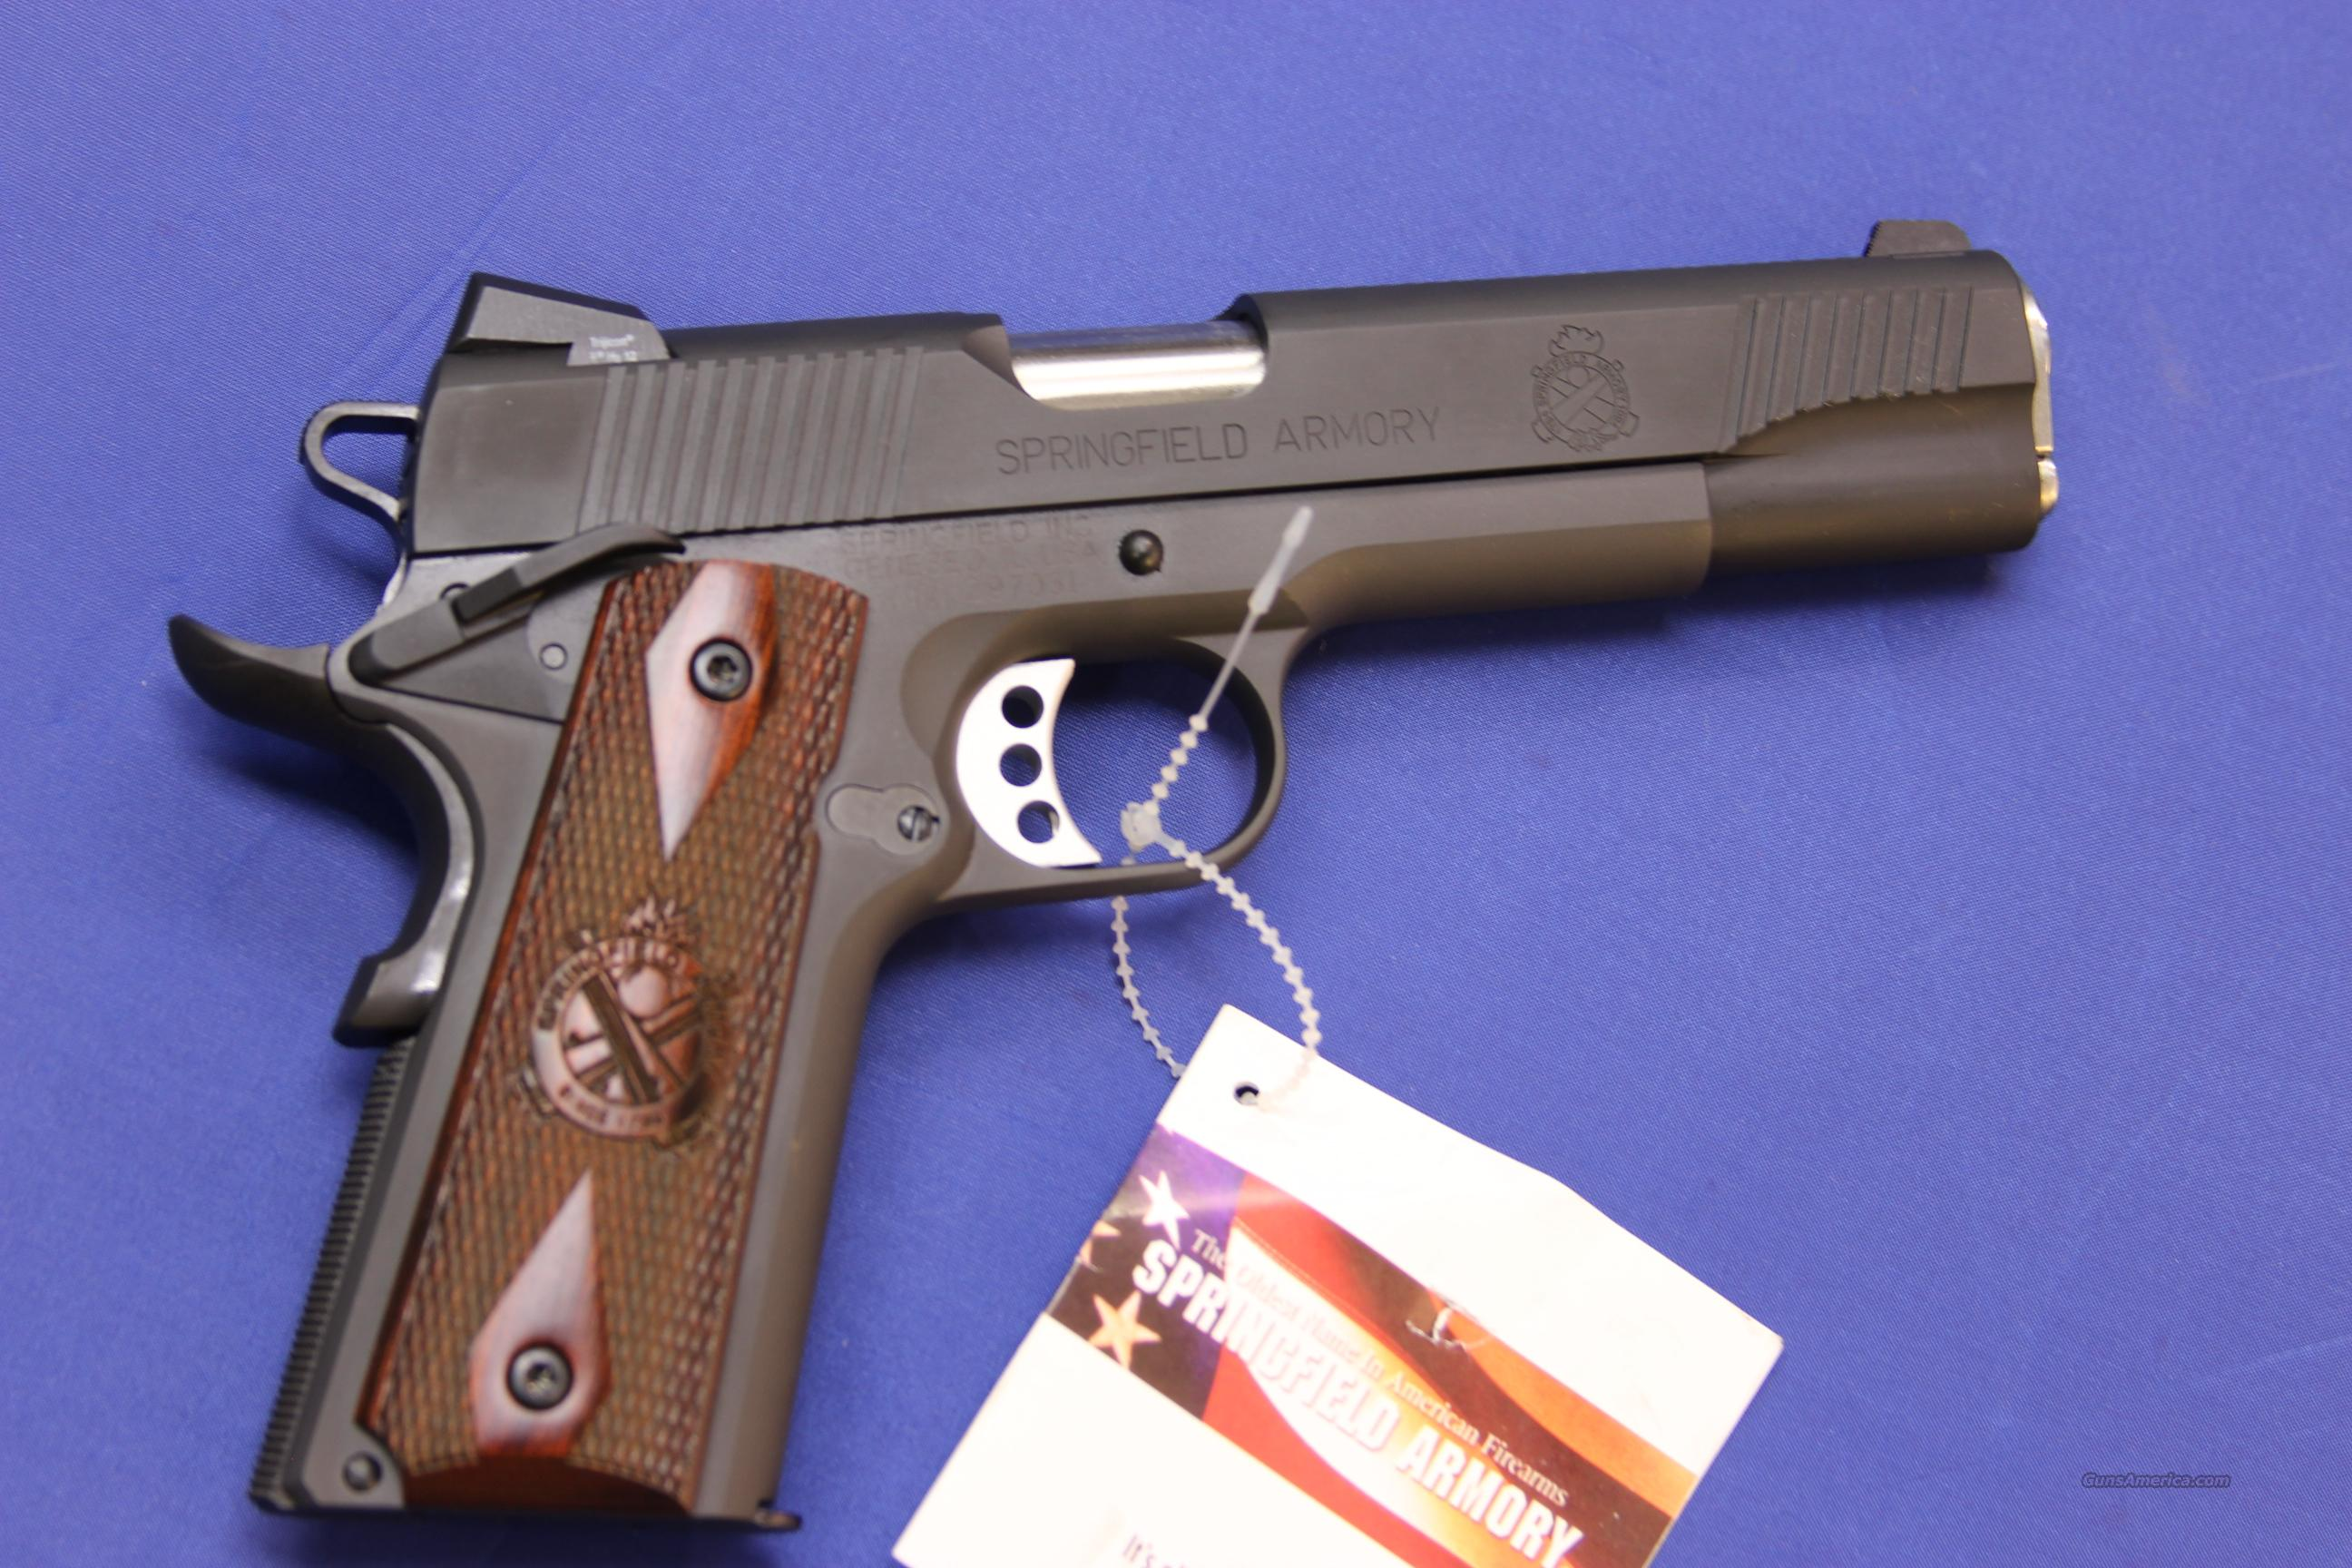 SPRINGFIELD 191-A1 SERVICE CUSTOM LOADED PX9109LP .45 ACP - NEW!  Guns > Pistols > Springfield Armory Pistols > 1911 Type